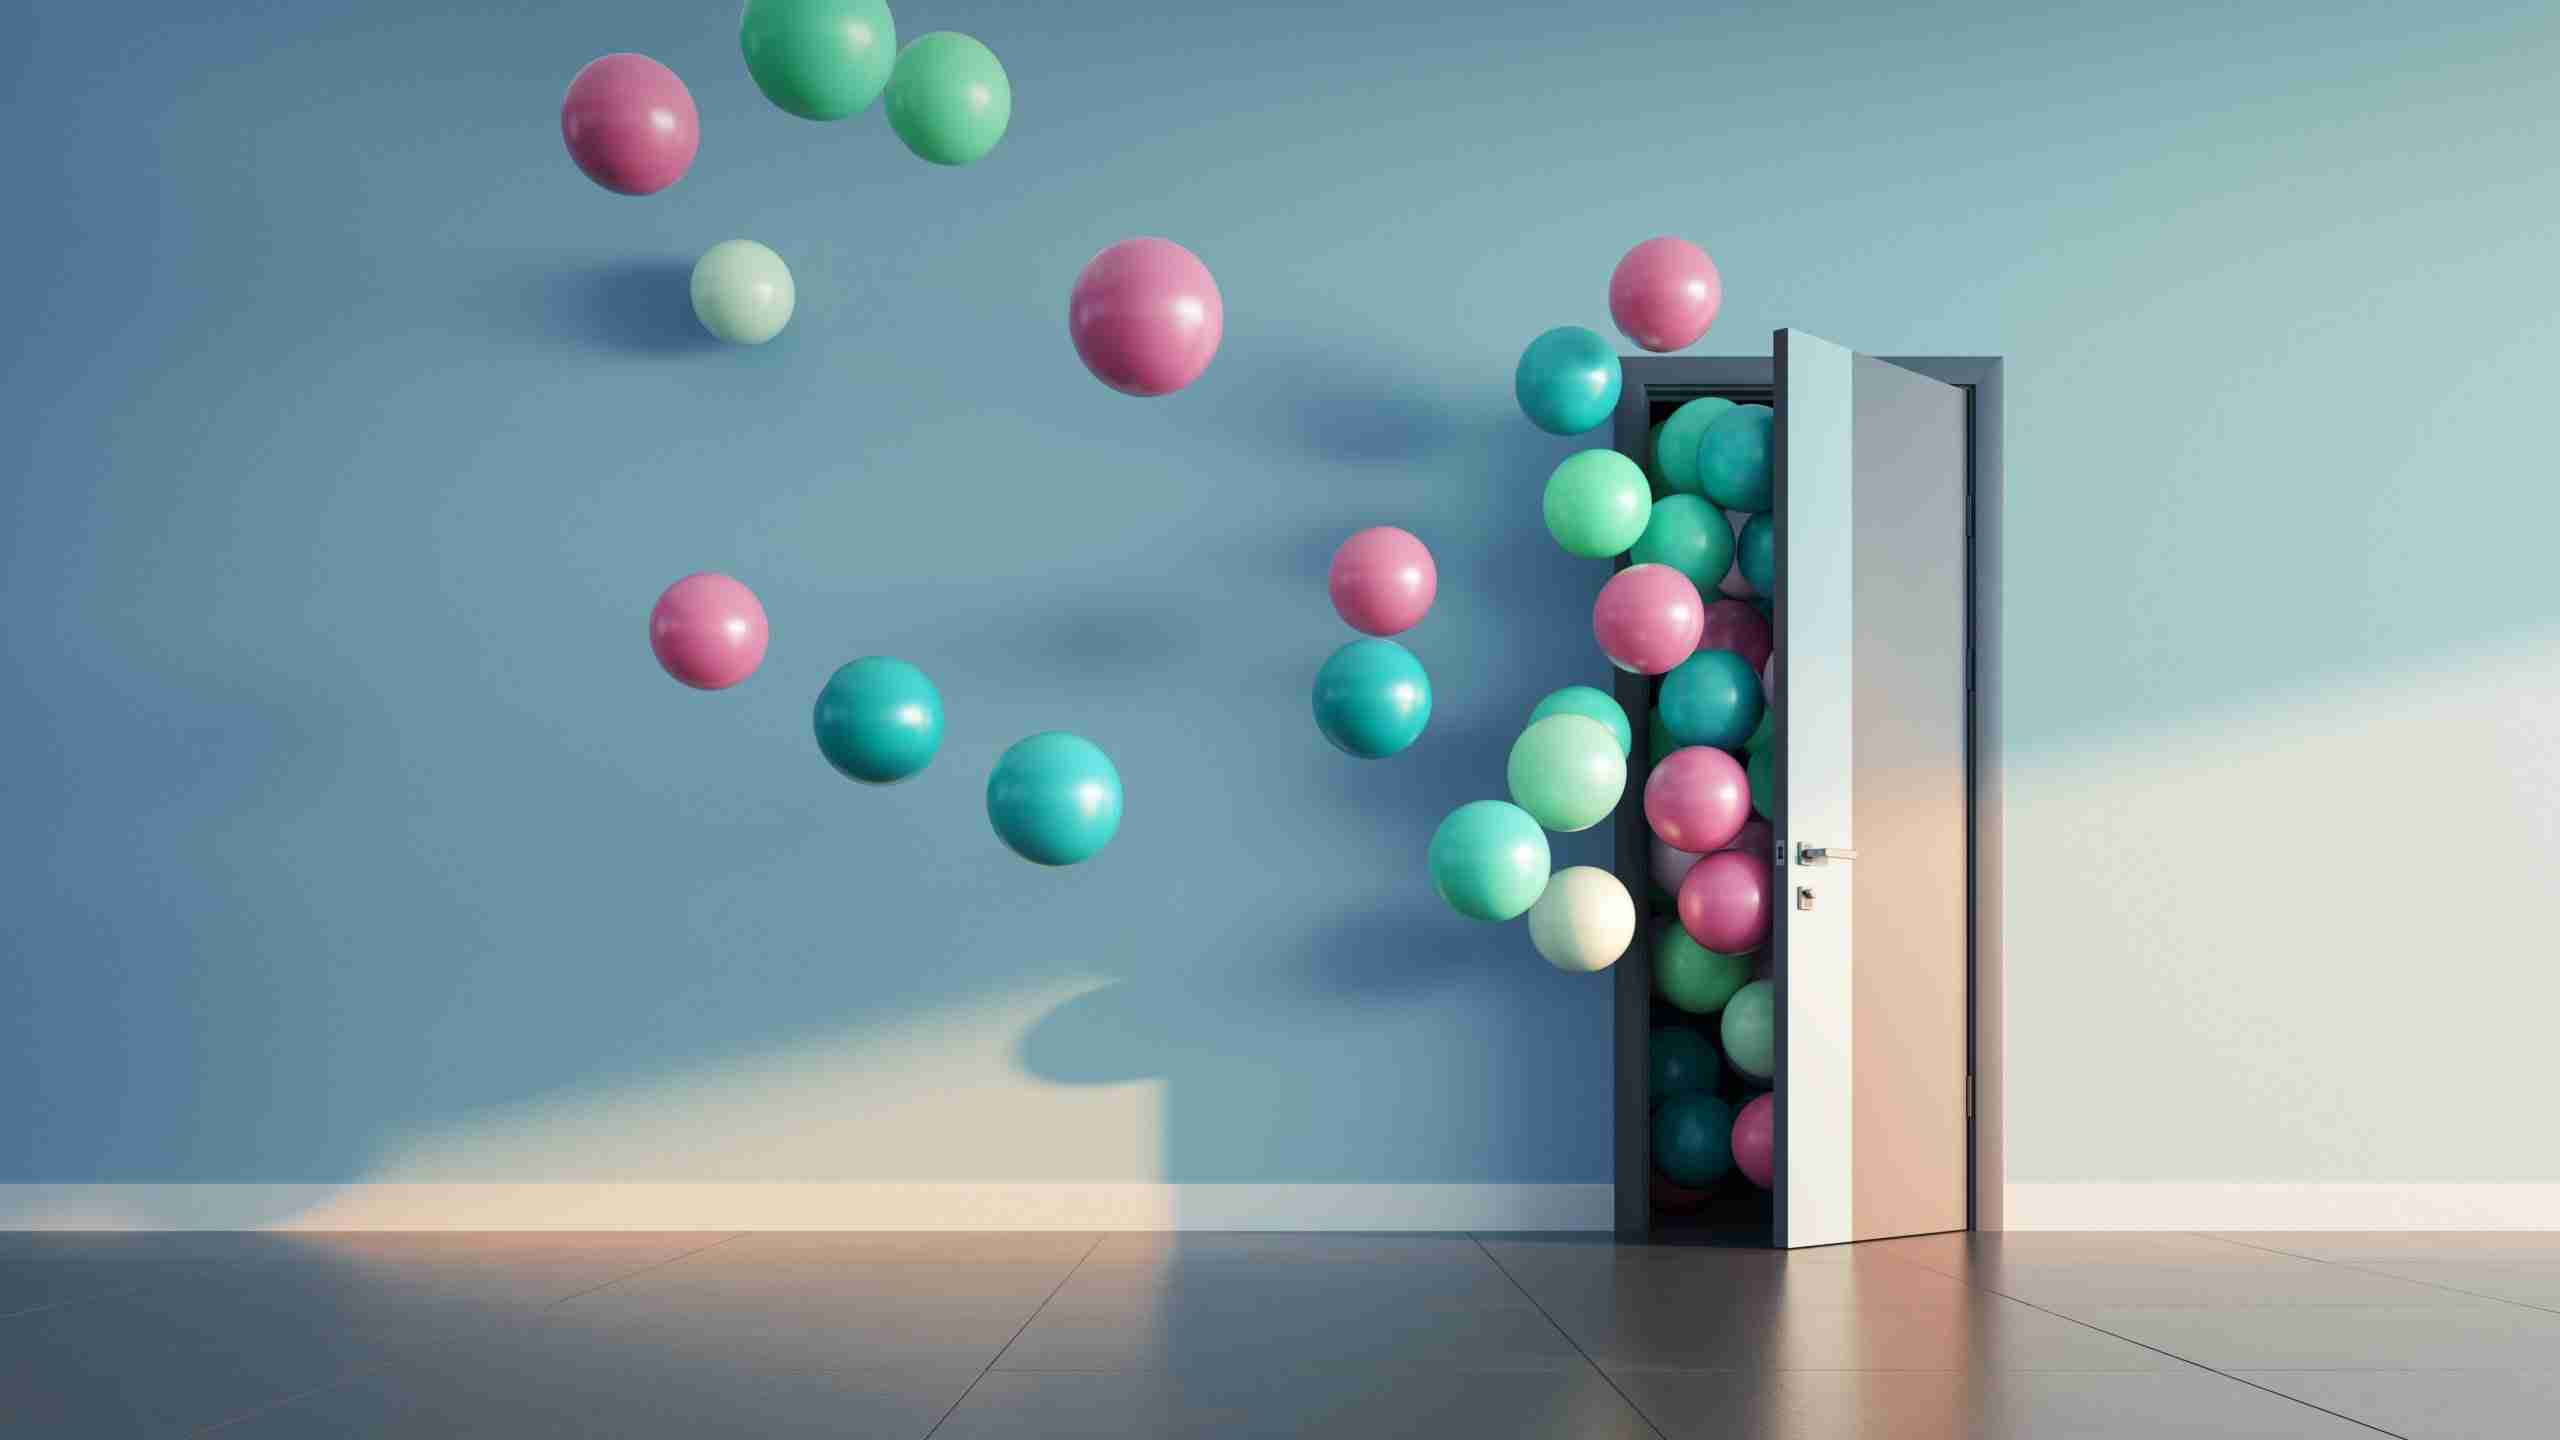 An open door with balls flowing through signifying the opportunities flowing through customer centricity and customer experience strategy.